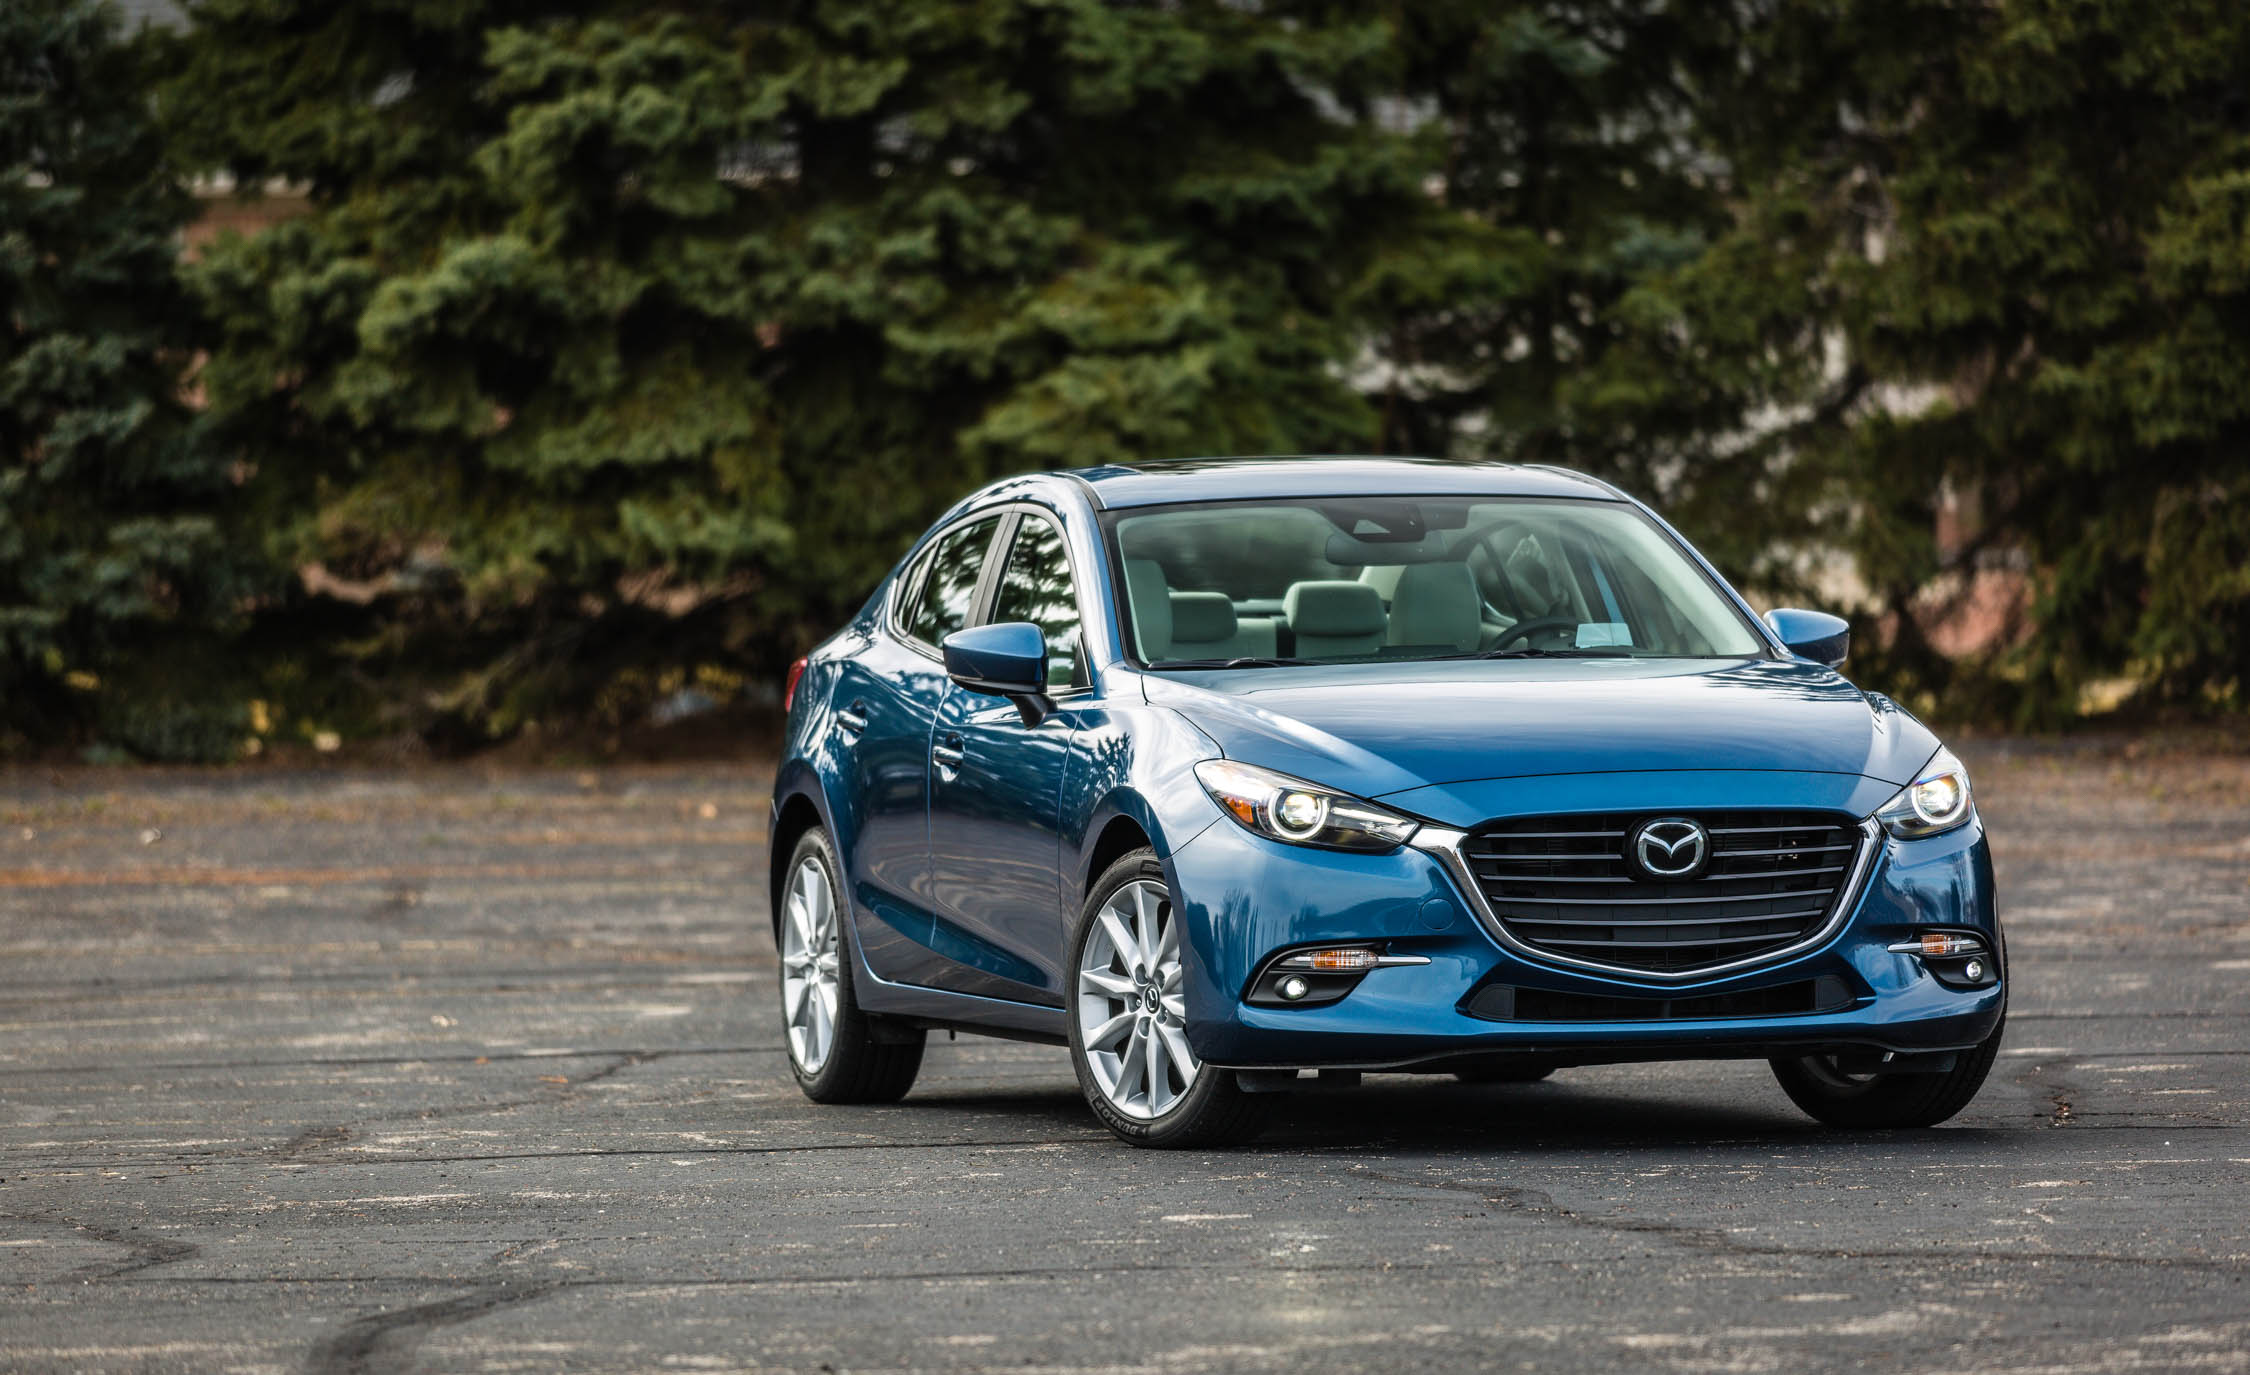 2017 Mazda 3 Grand Touring Sedan Exterior Blue Metallic (Photo 1 of 51)